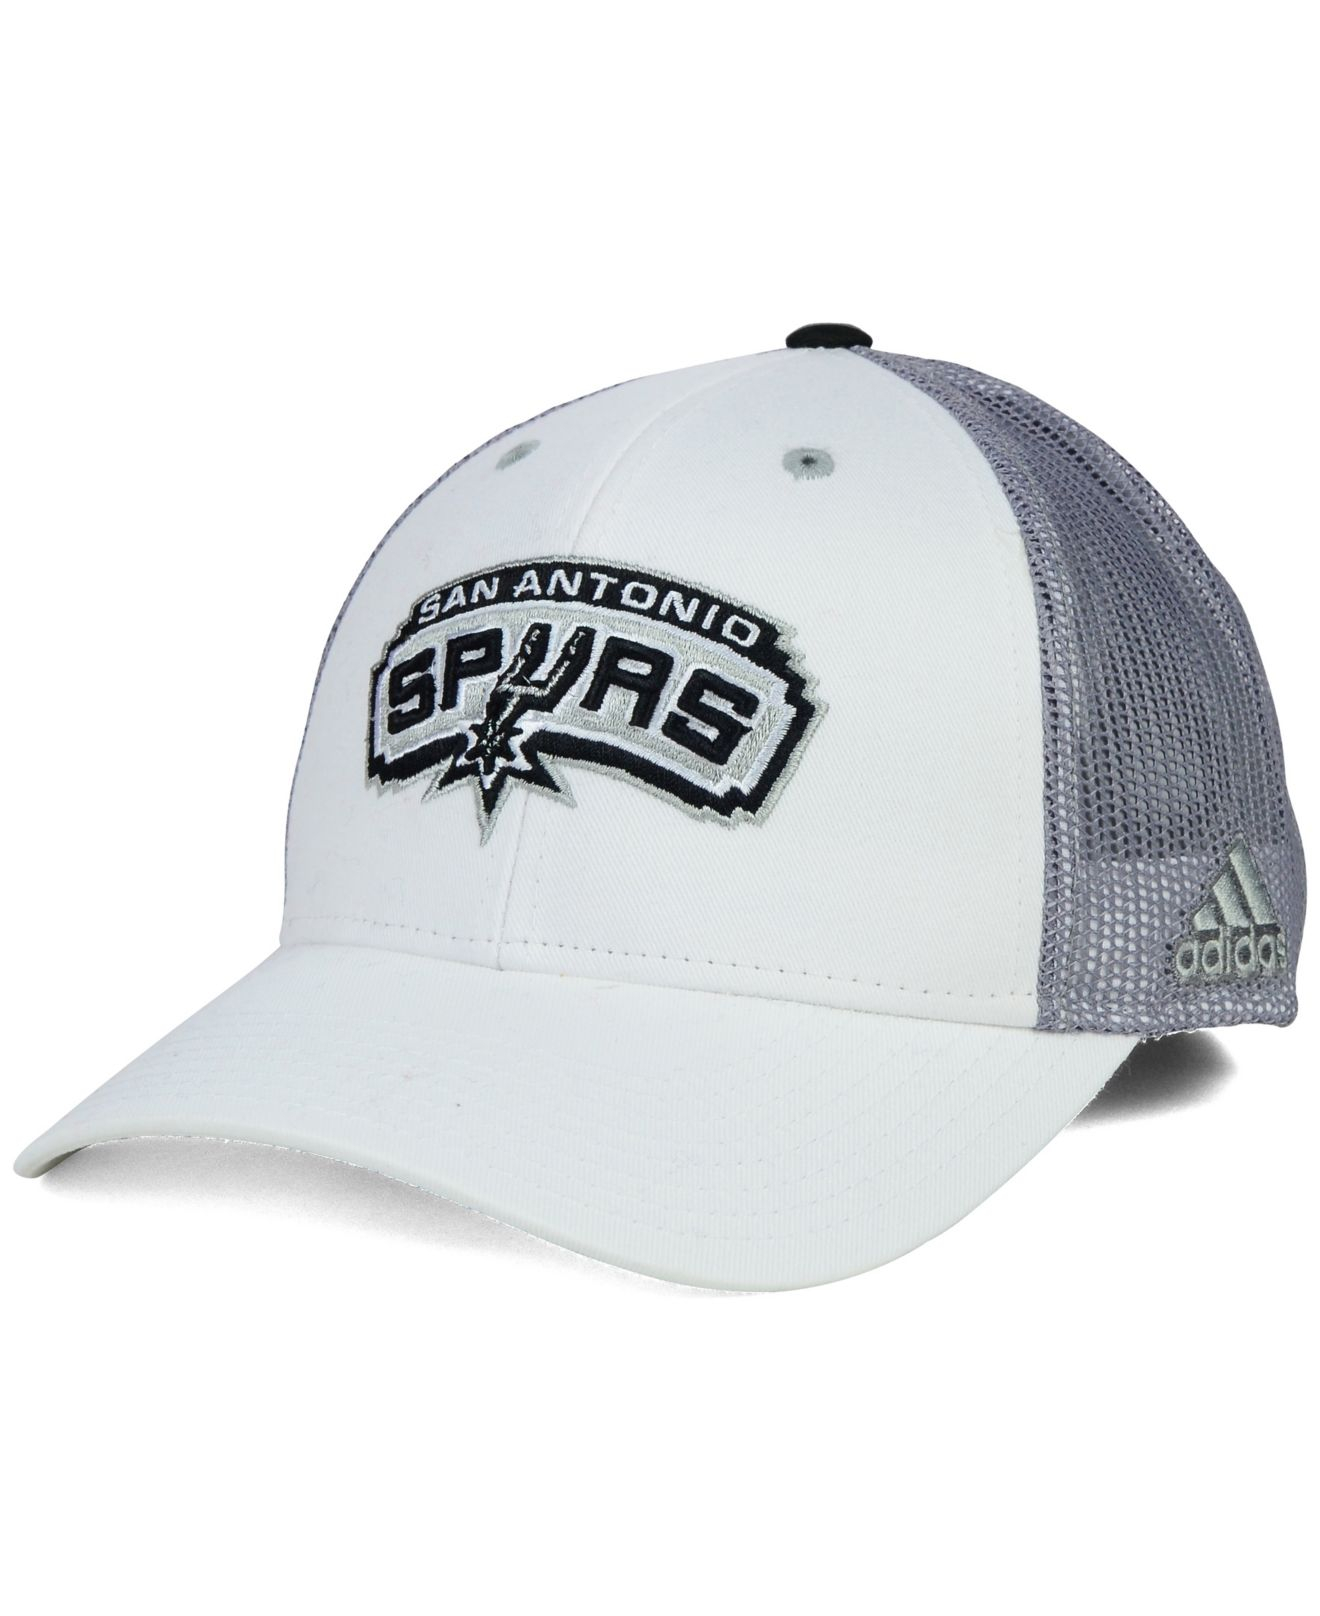 7164d8126a7c5 Lyst - adidas San Antonio Spurs Back Screen Mesh Cap in White for Men